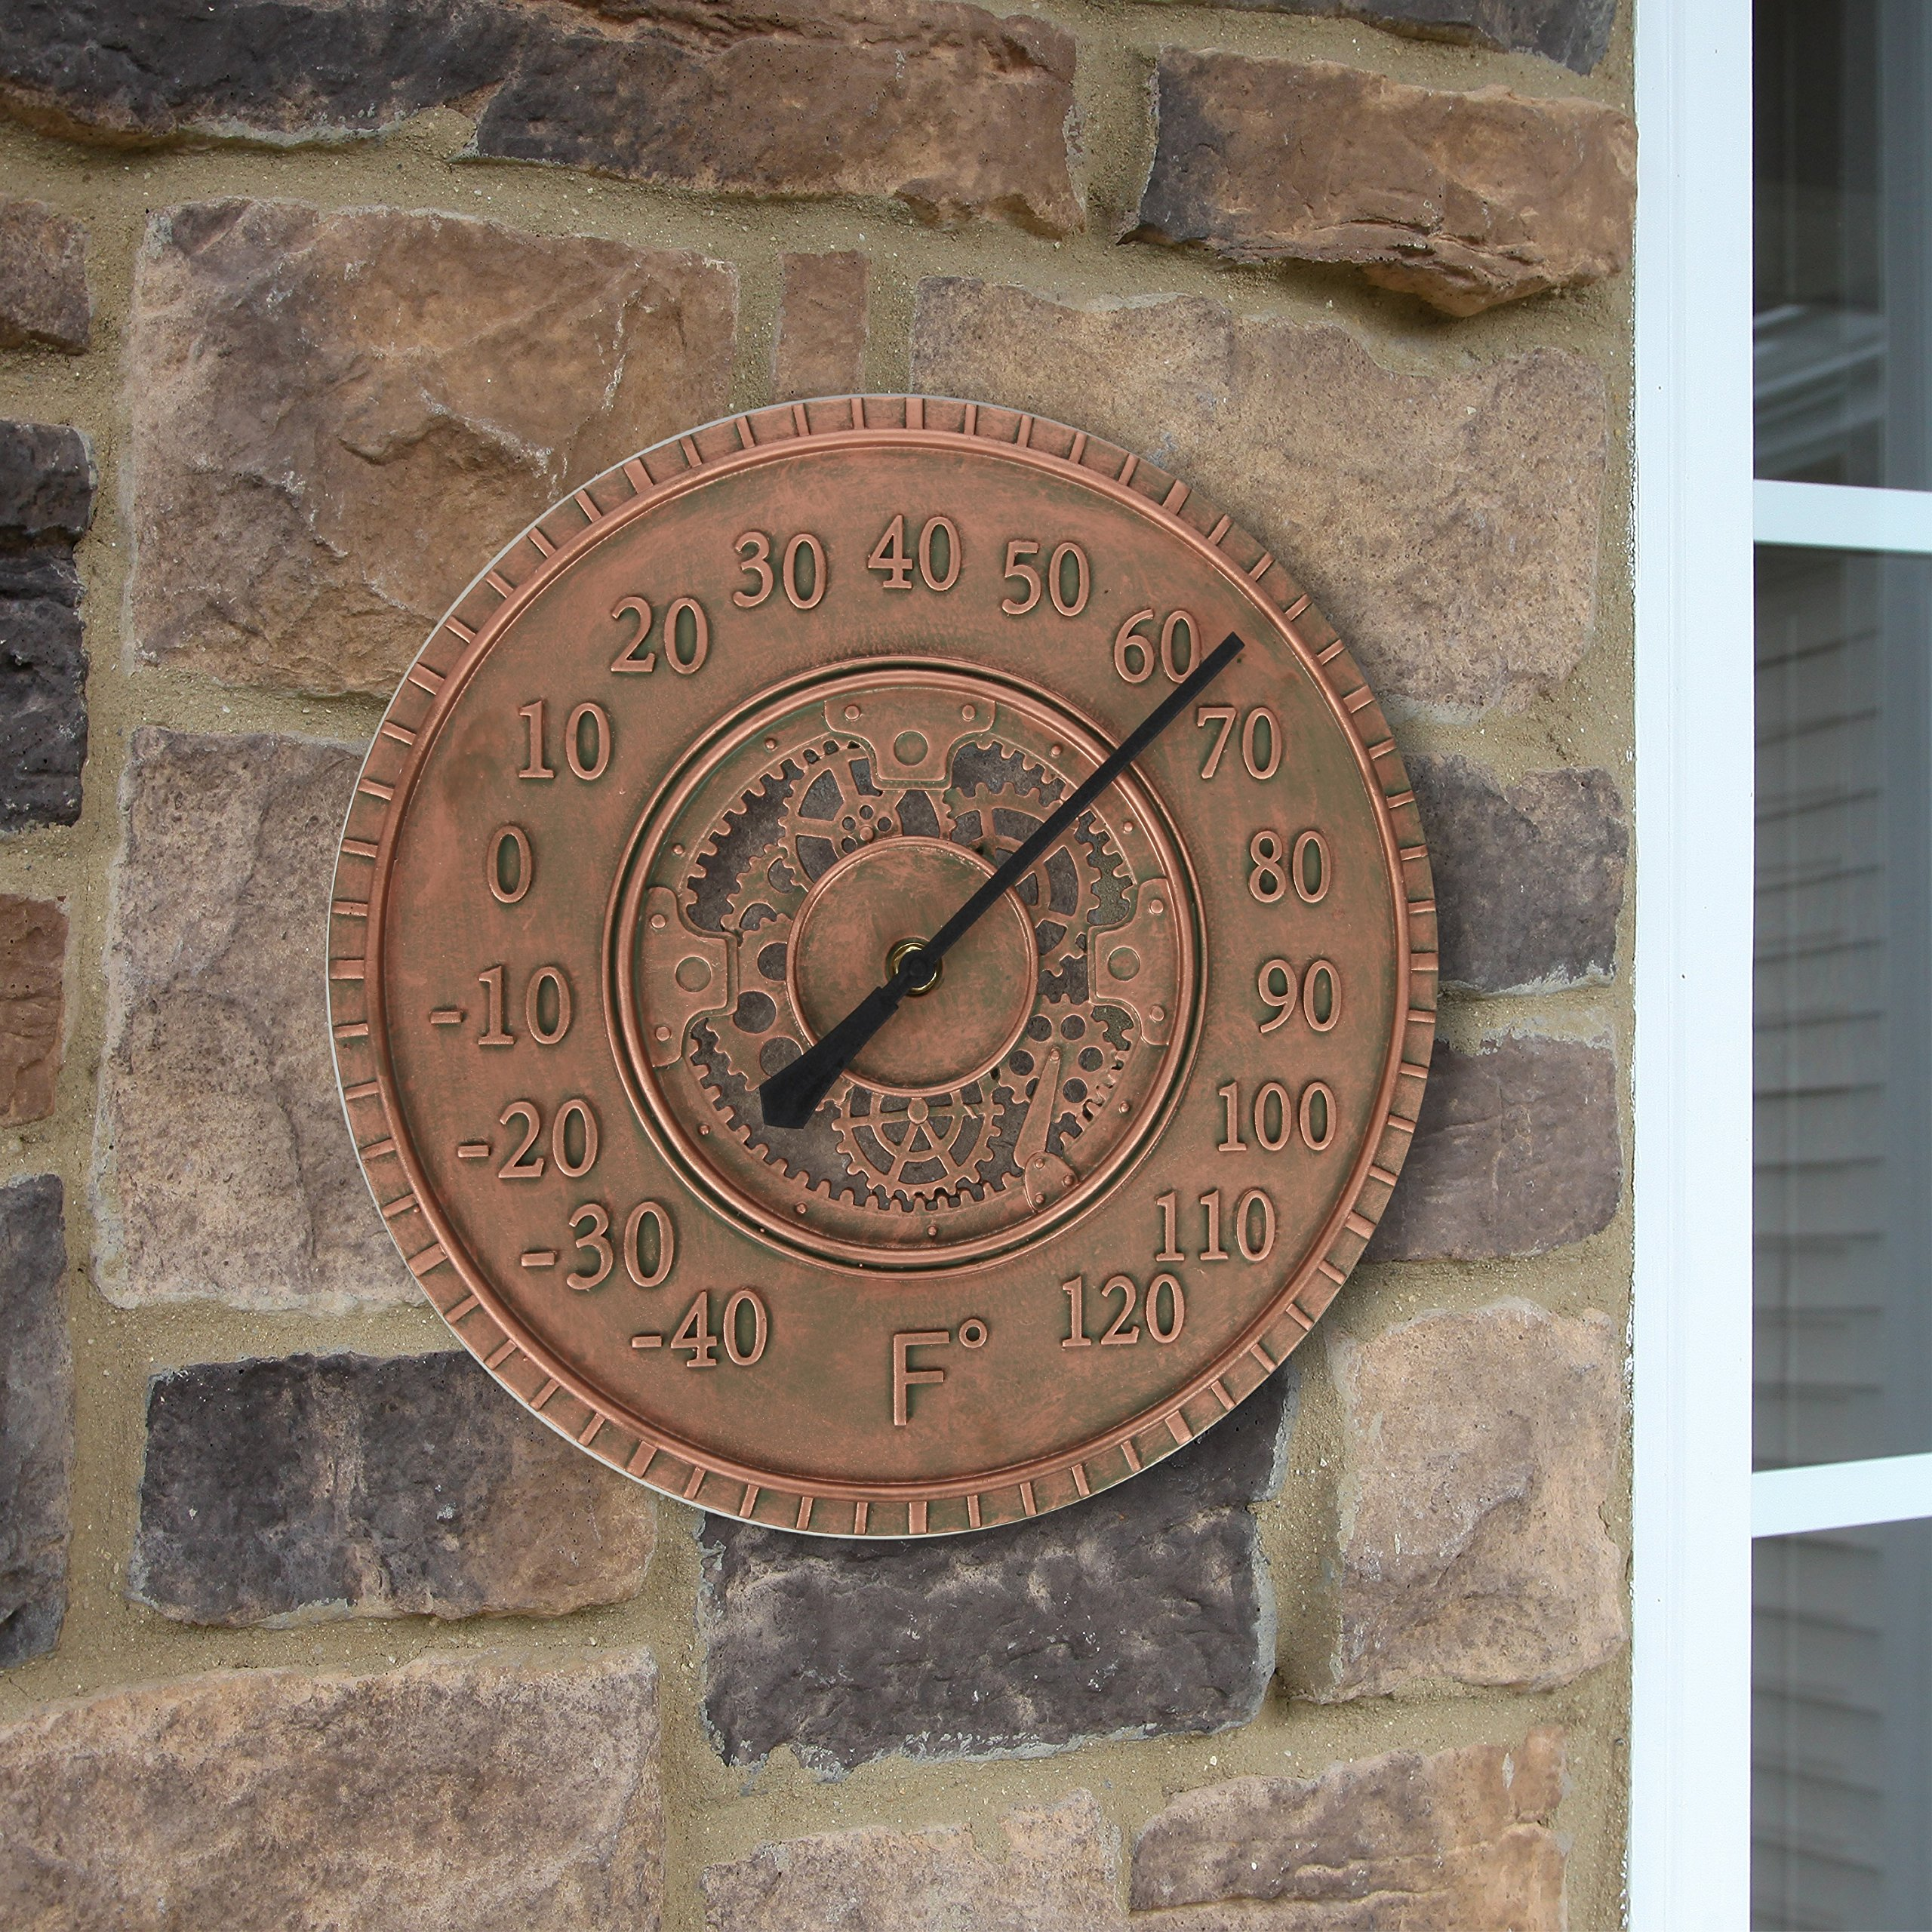 Lily's Home Hanging Wall Thermometer, Steampunk Gear and Cog Design with a Bronze Finish, Ideal for Indoor or Outdoor Use, Poly-Resin (13 Inches Diameter) by Lilyshome (Image #2)